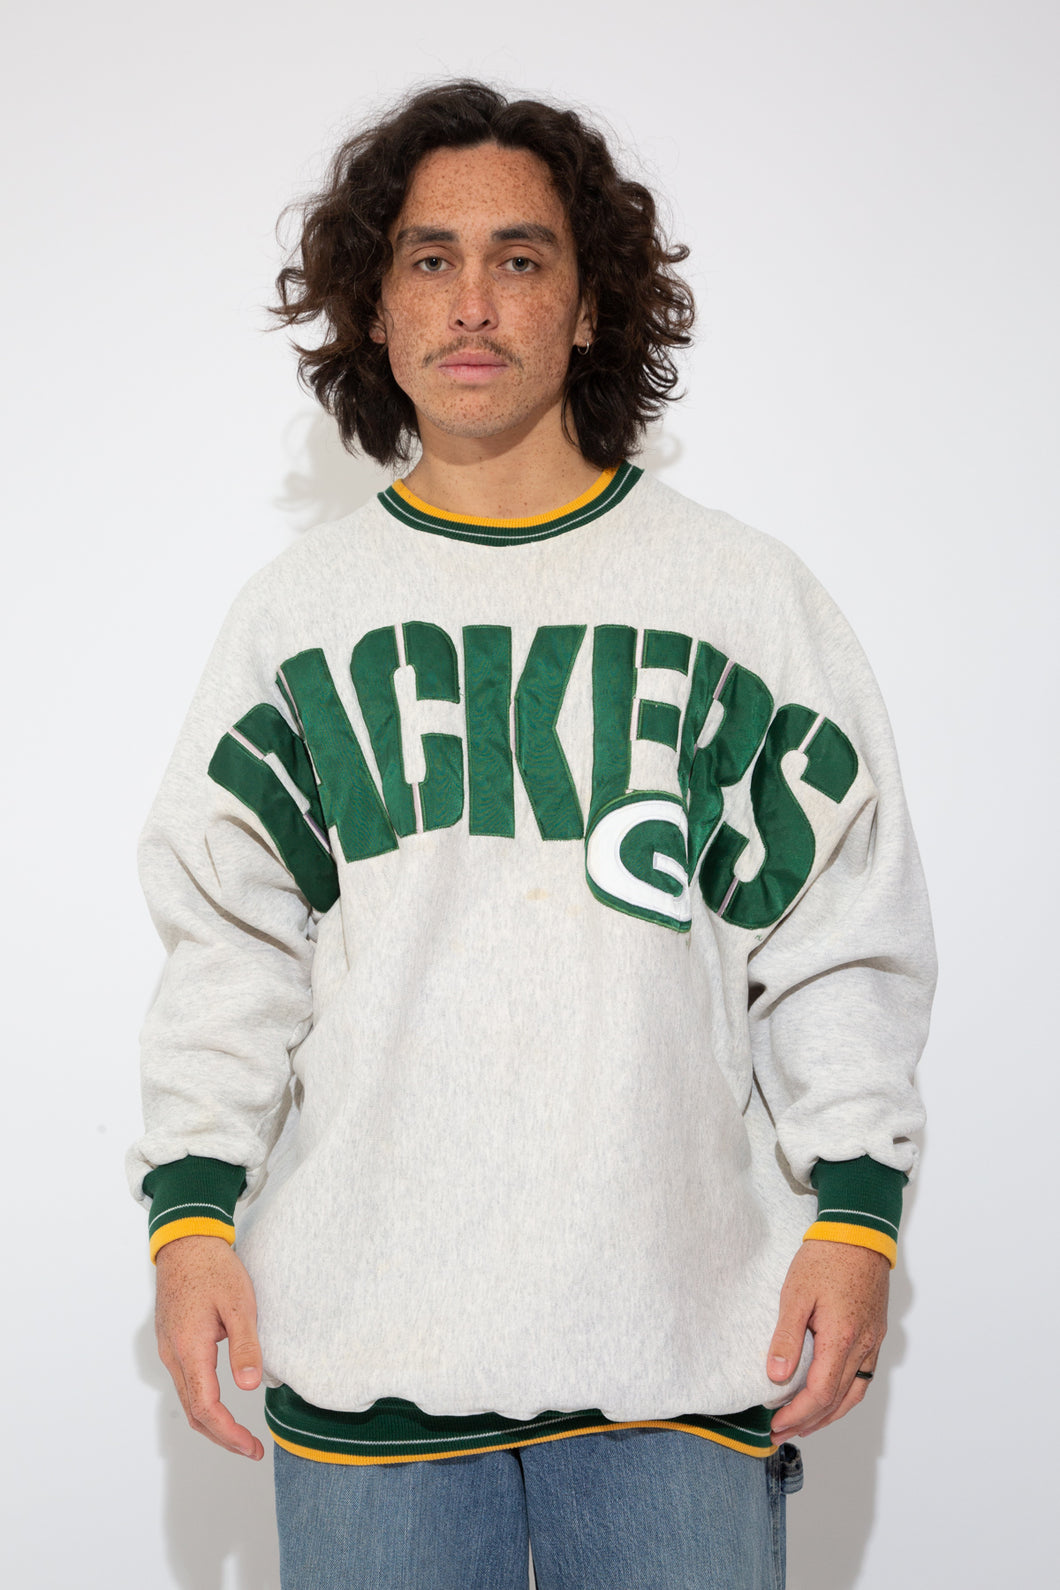 packers nfl sweater. 90s vintage. magichollow.